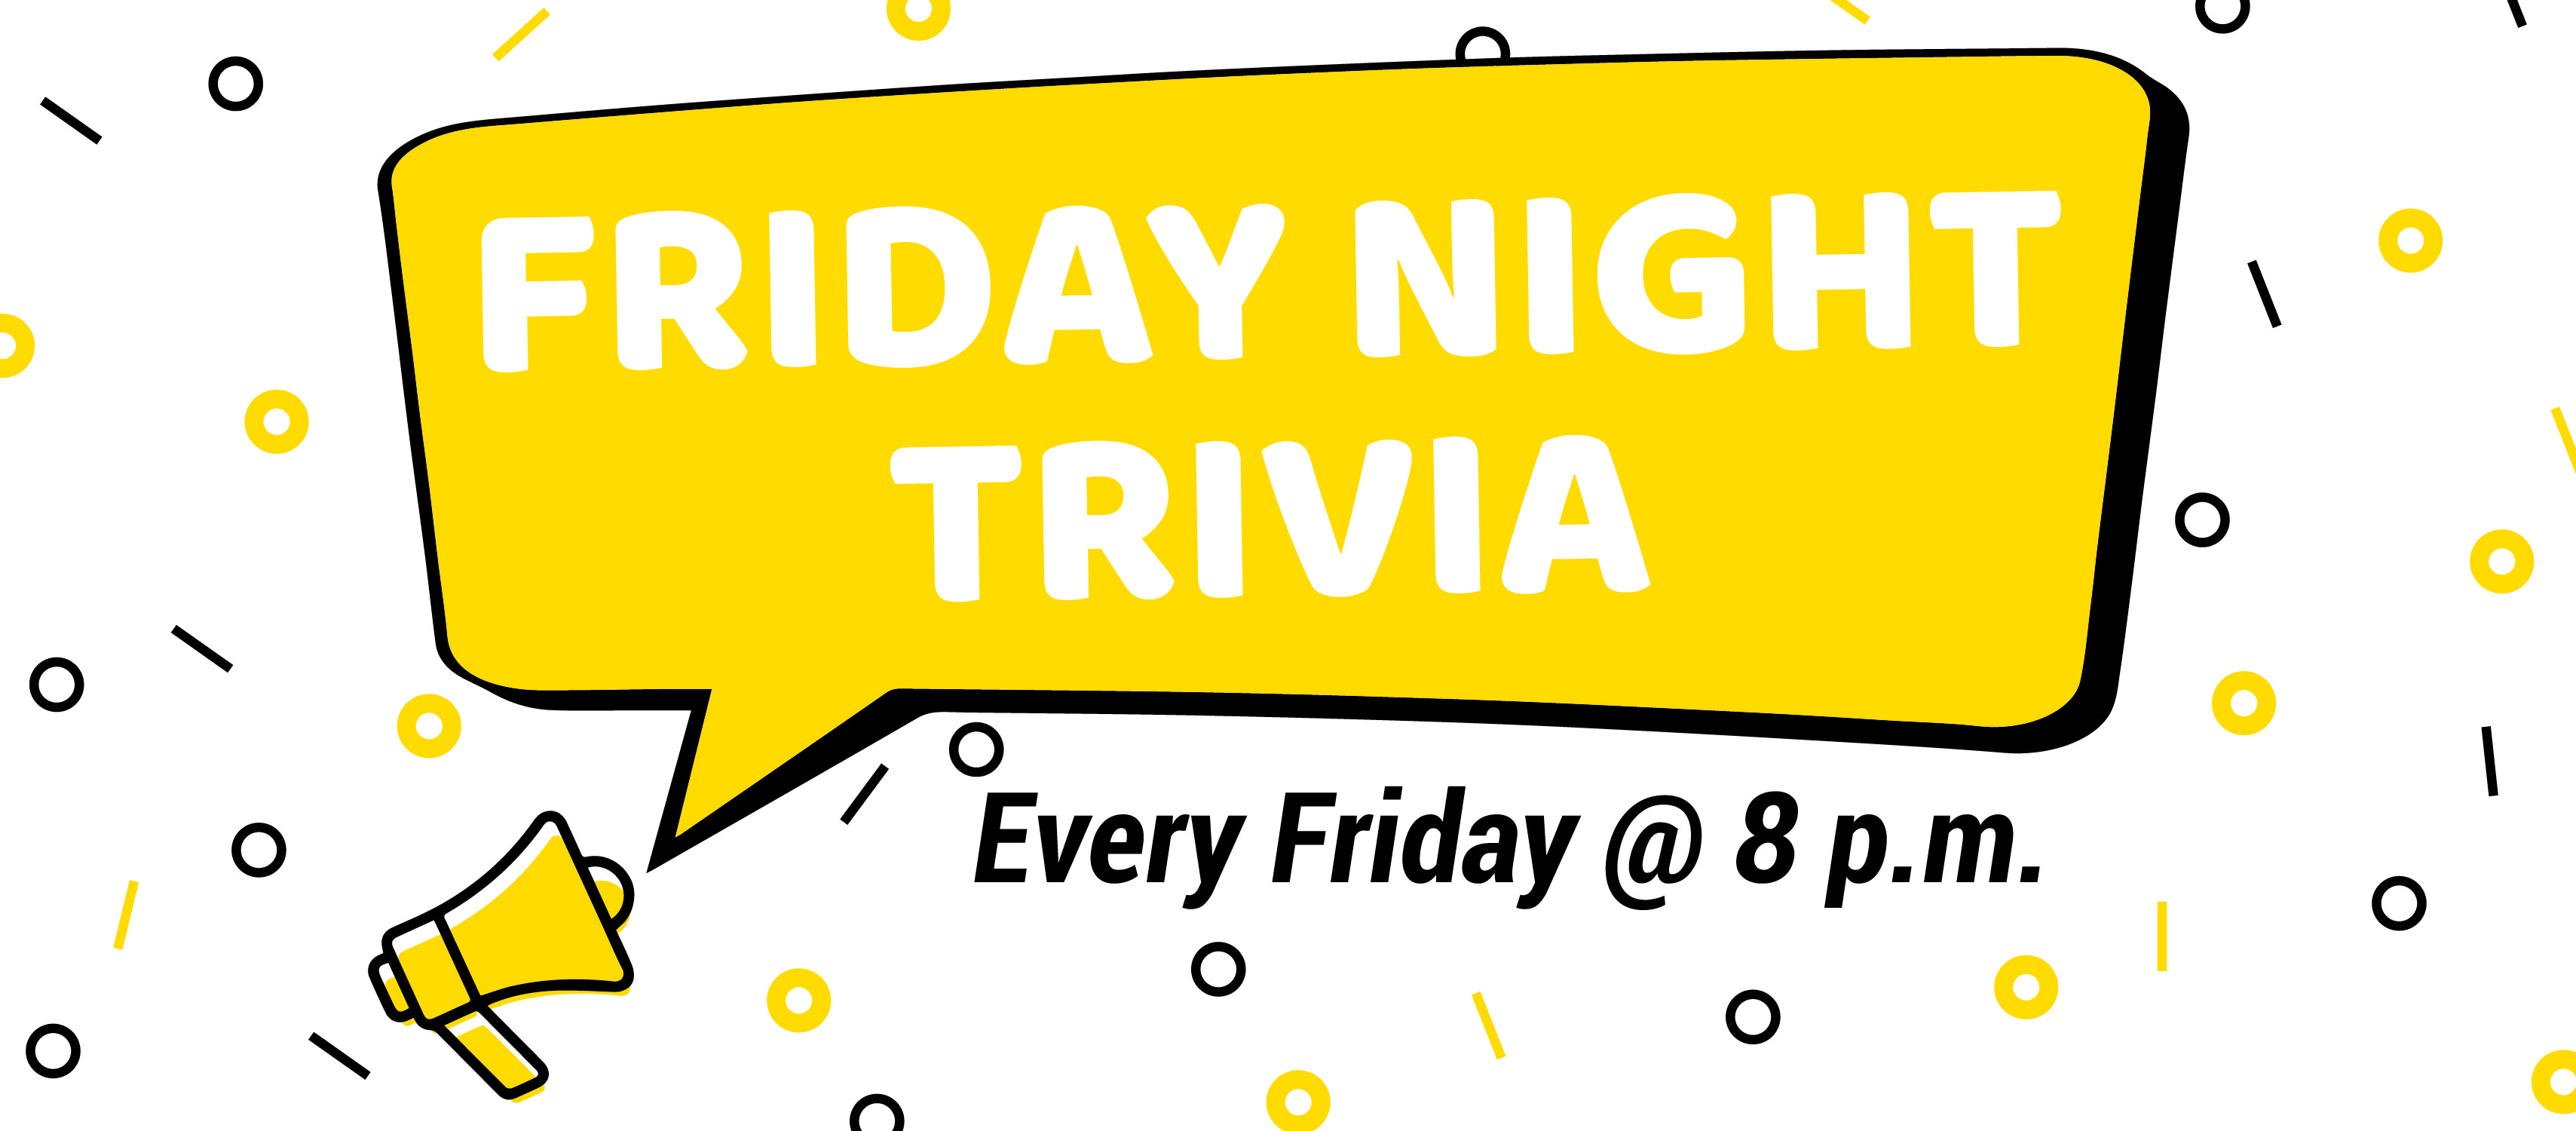 Friday Night Trivia Every Friday @ 8 p.m.